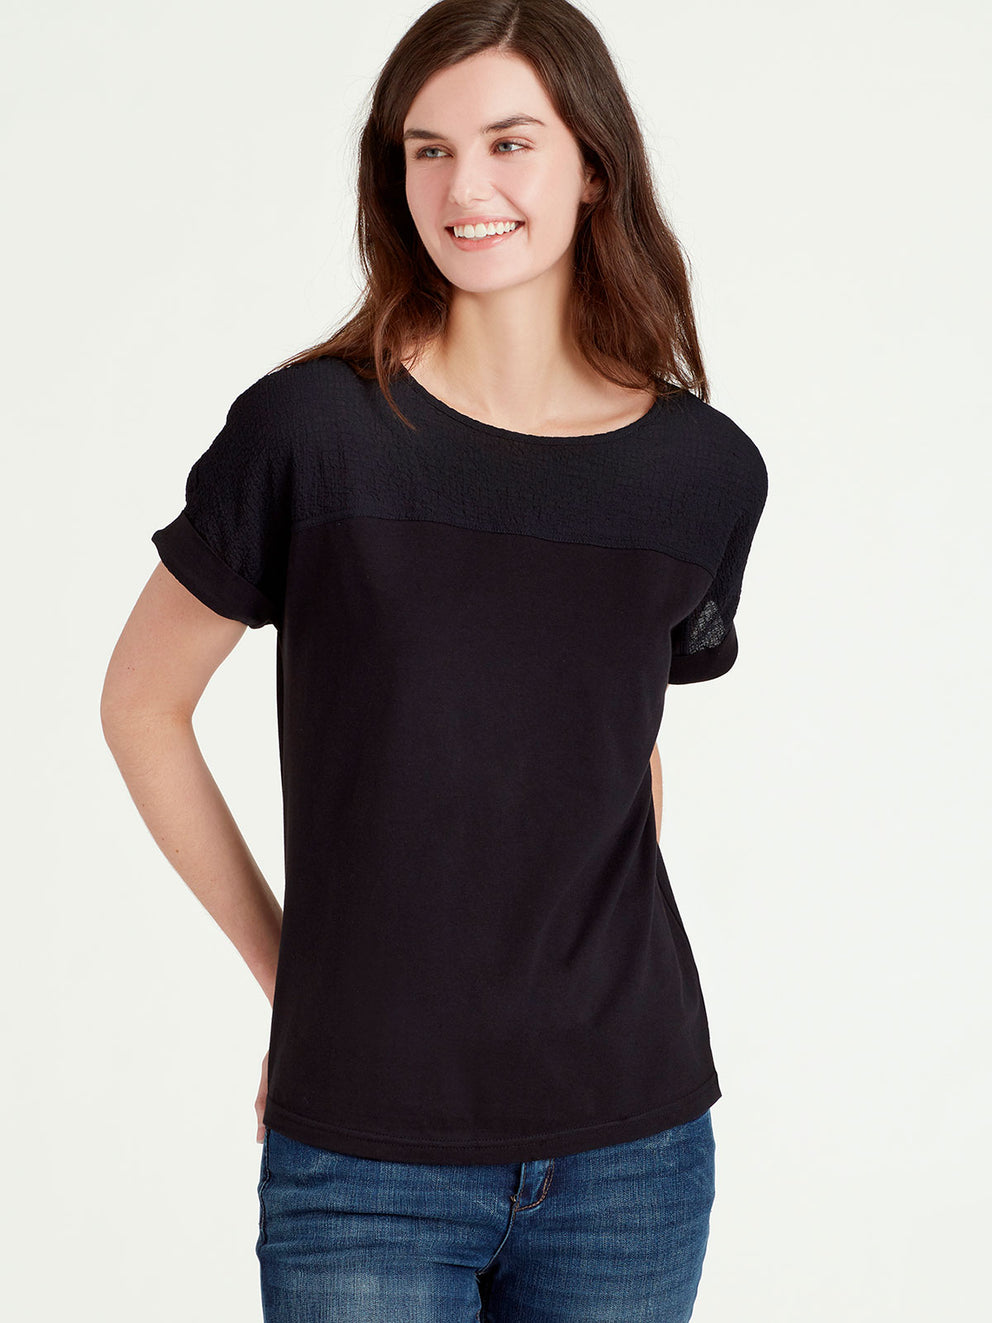 The Jones New York Sheer Panel Top in color Black - Image Position 1